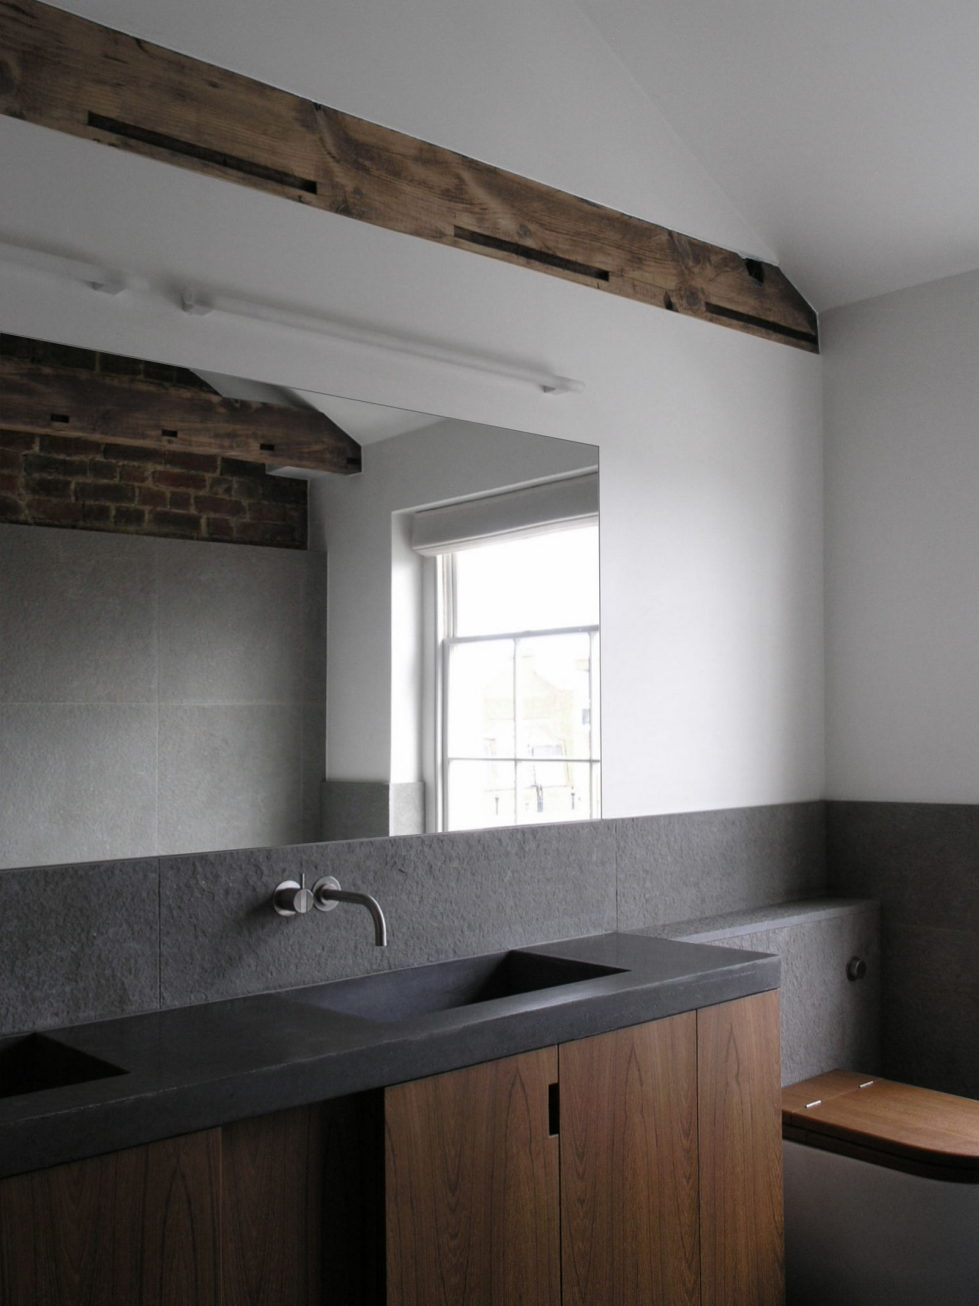 The restoration of the townhouse in London 14